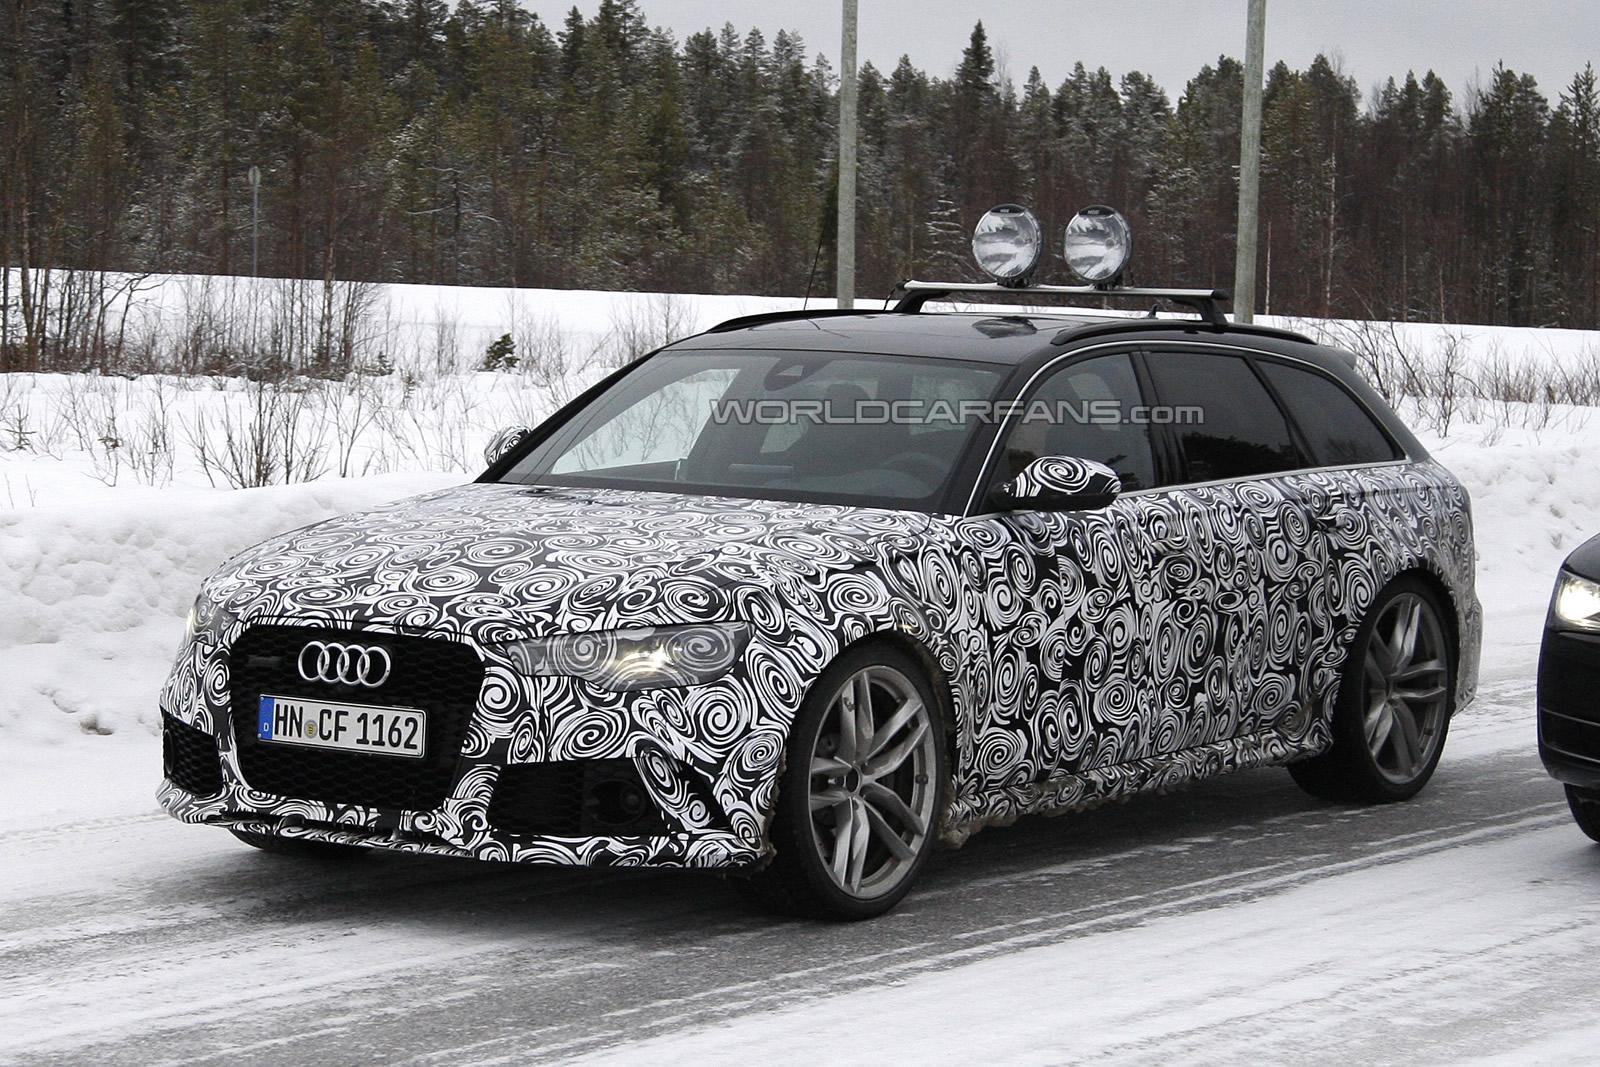 facelifted audi rs6 spied testing in the snow gtspirit. Black Bedroom Furniture Sets. Home Design Ideas